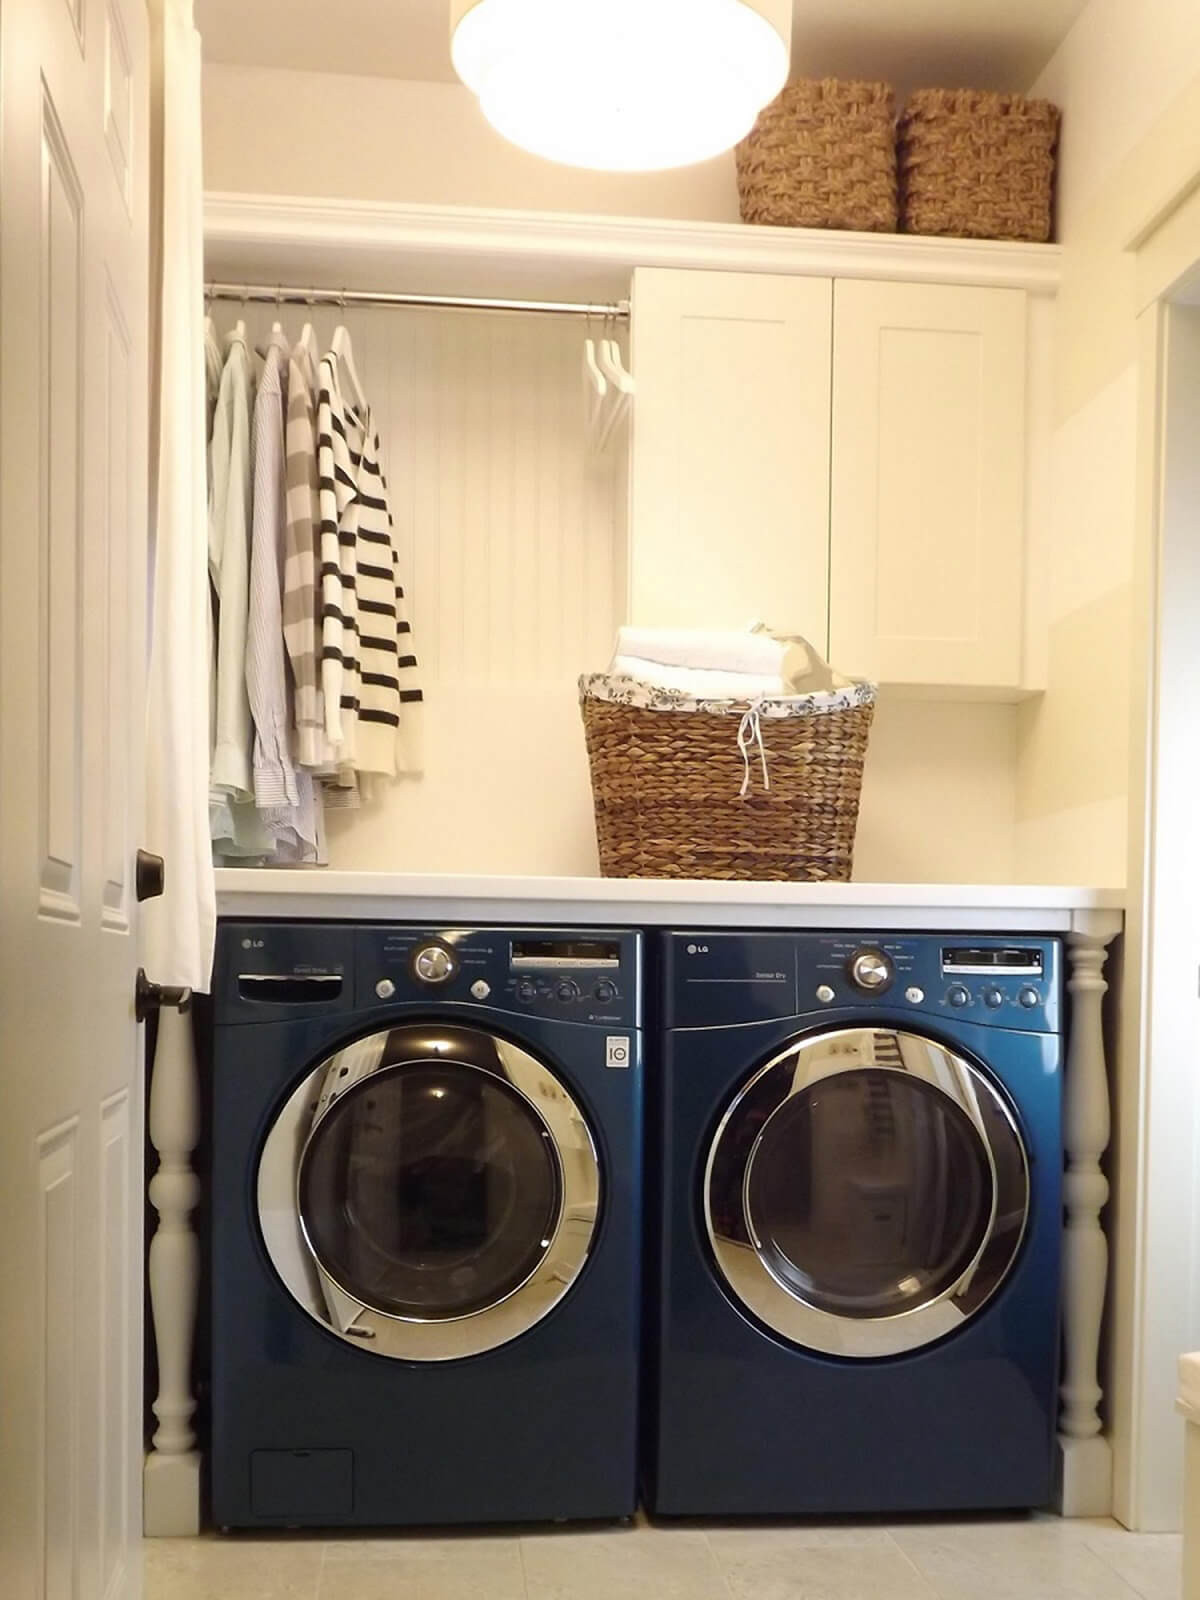 Best ideas about Small Laundry Room Design . Save or Pin 28 Best Small Laundry Room Design Ideas for 2019 Now.